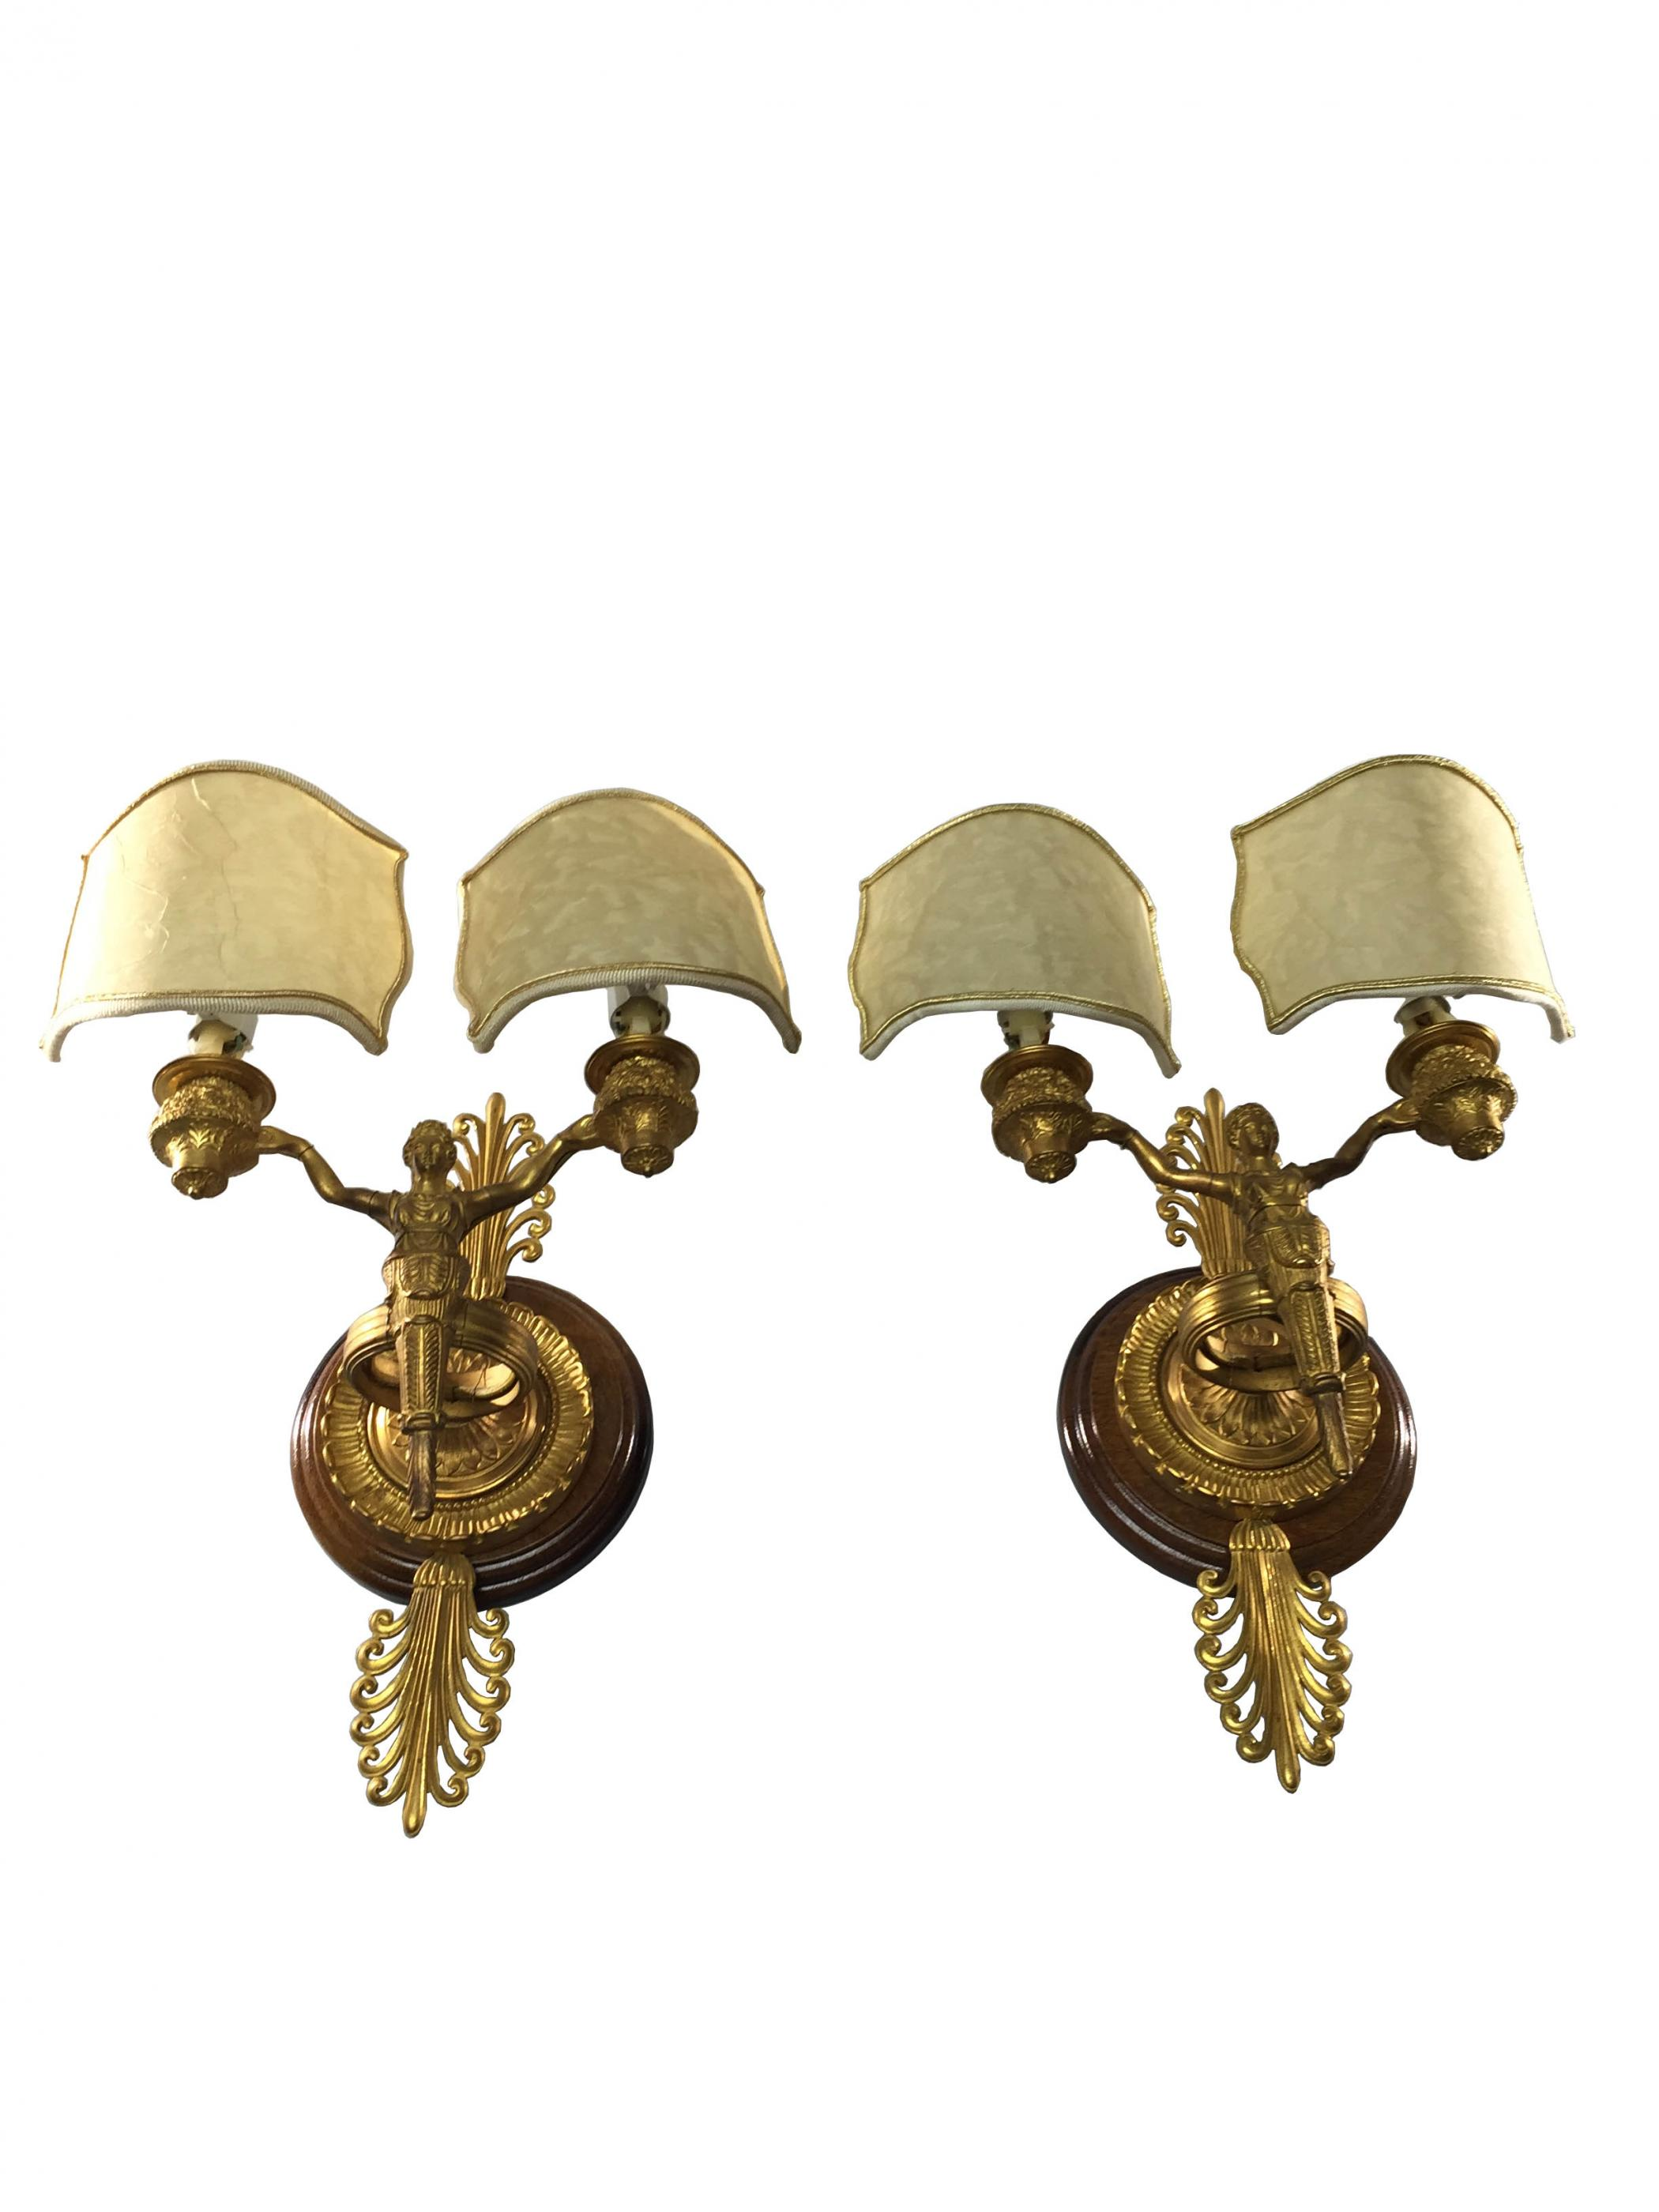 Hollywood Regency Double Shade Wall Sconce Modernism